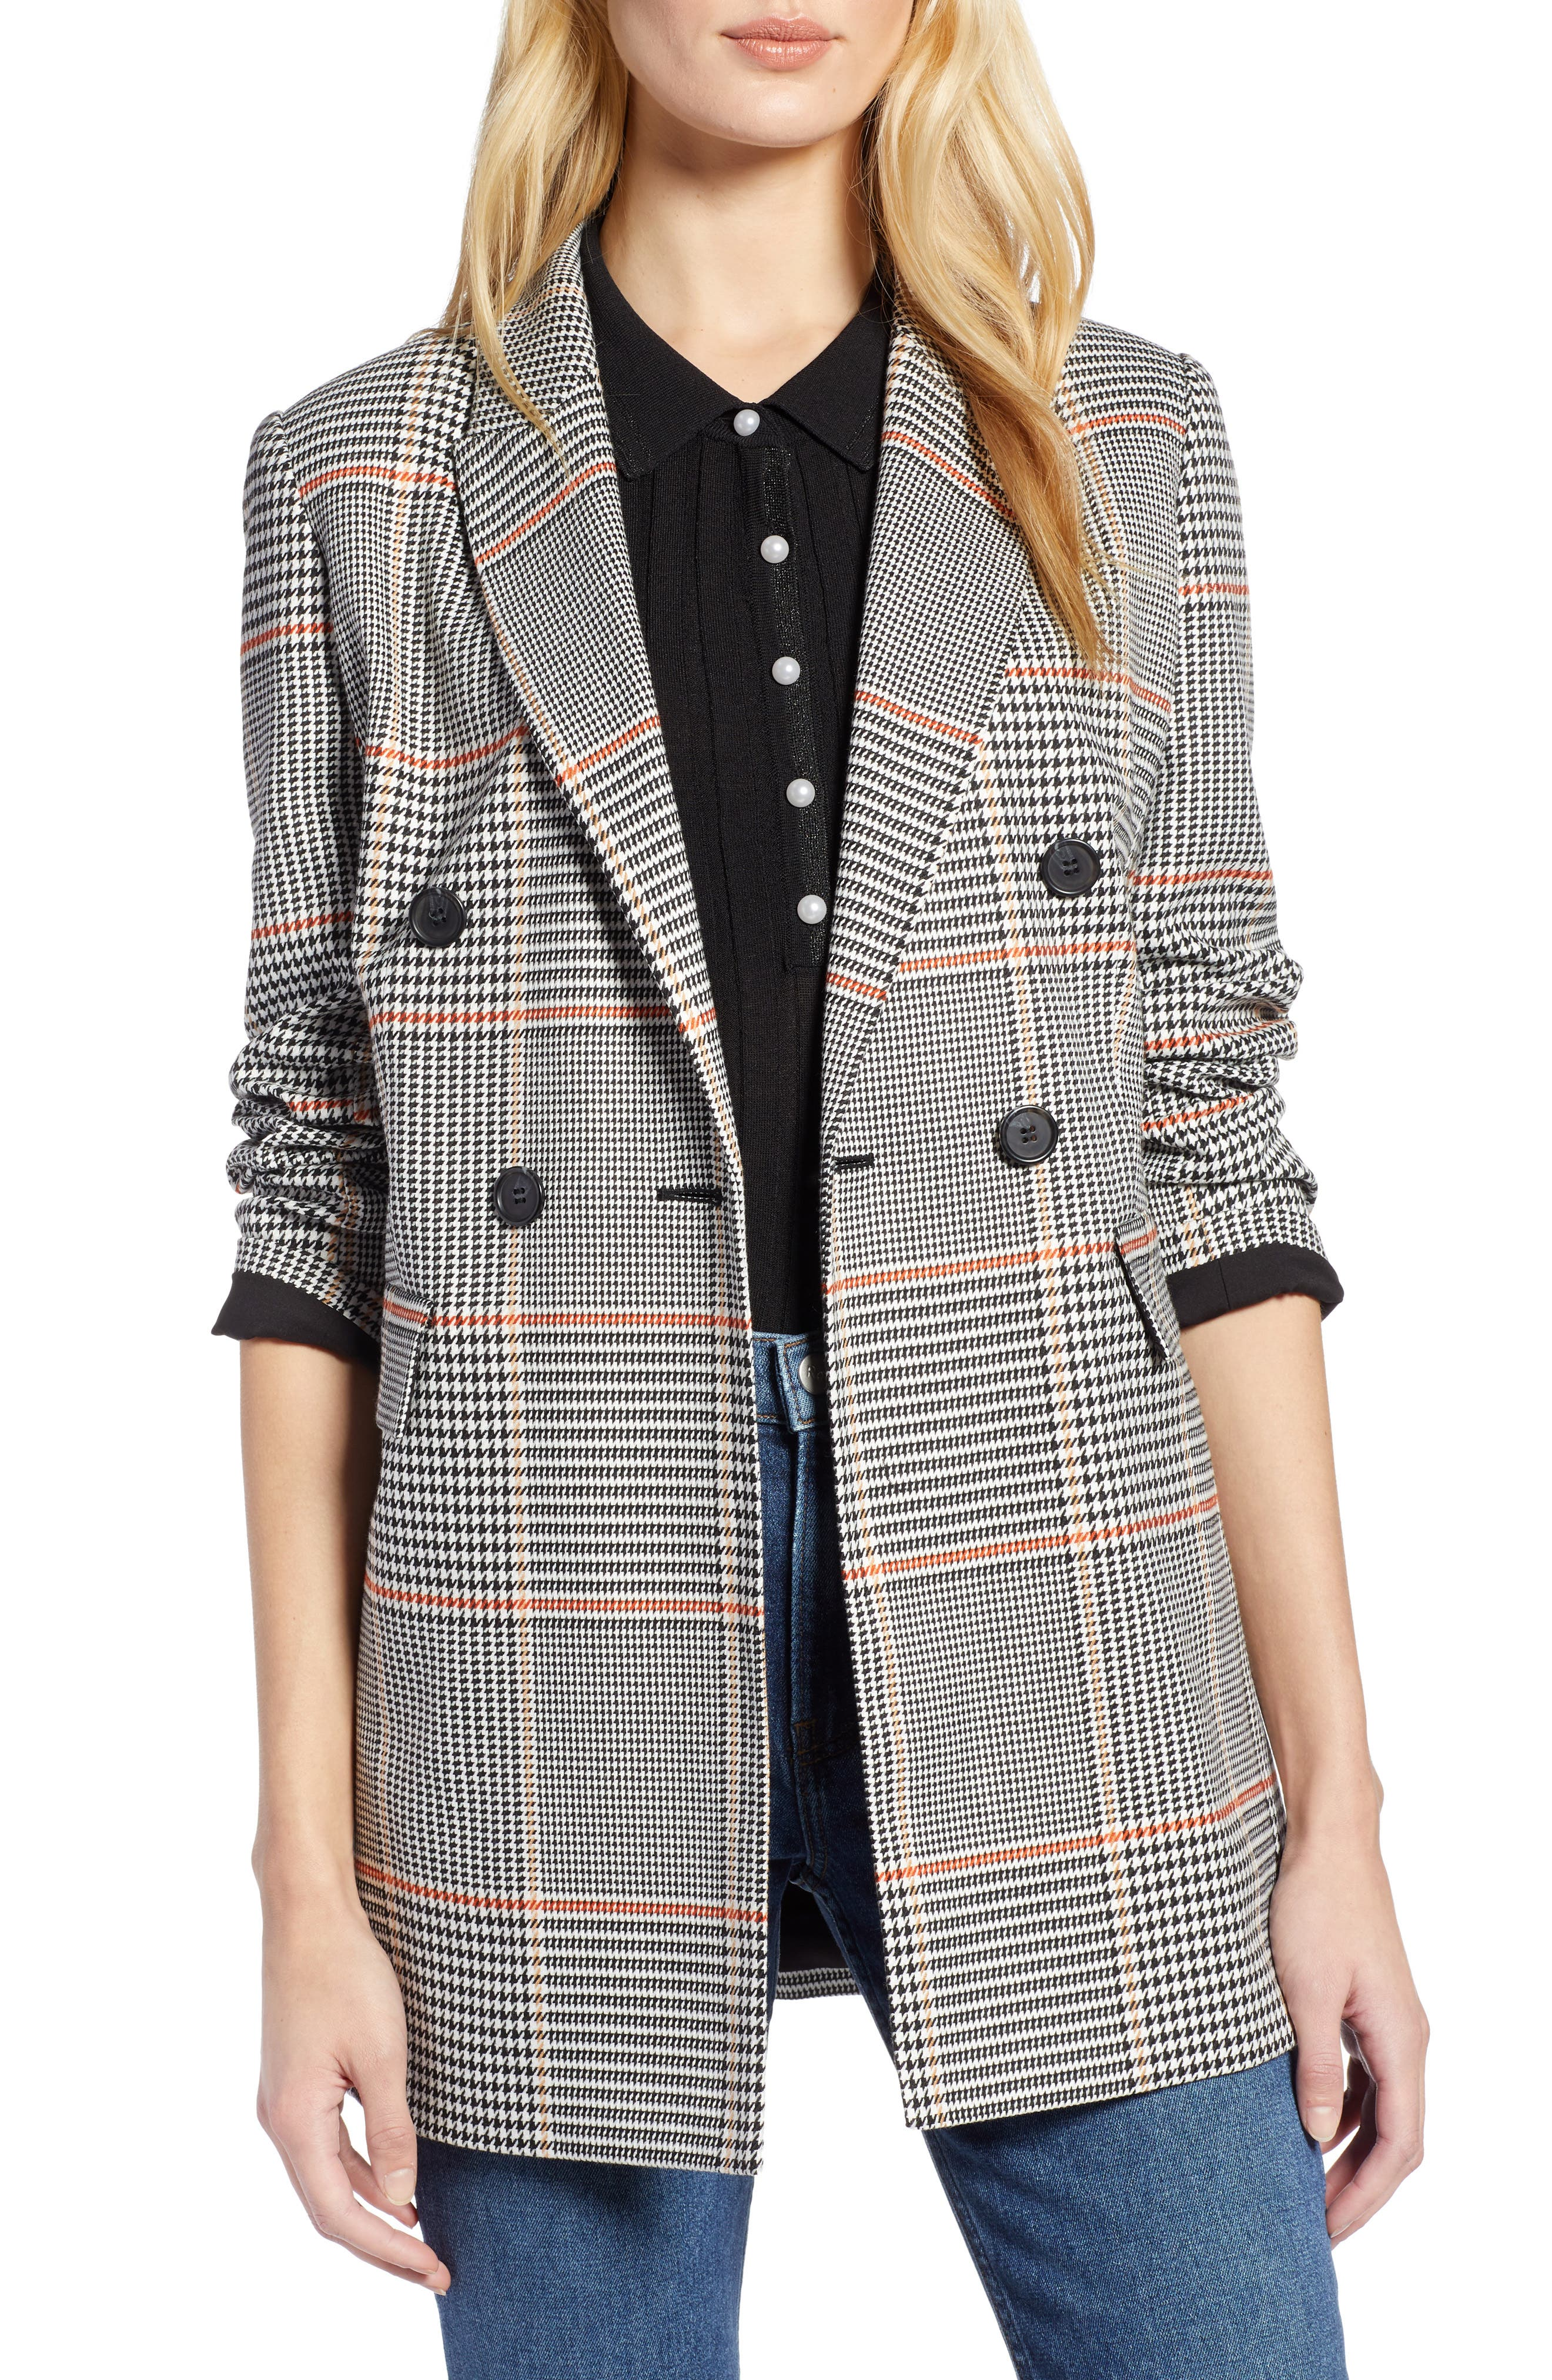 x Atlantic-Pacific Menswear Plaid Blazer,                         Main,                         color, BLACK PLAID